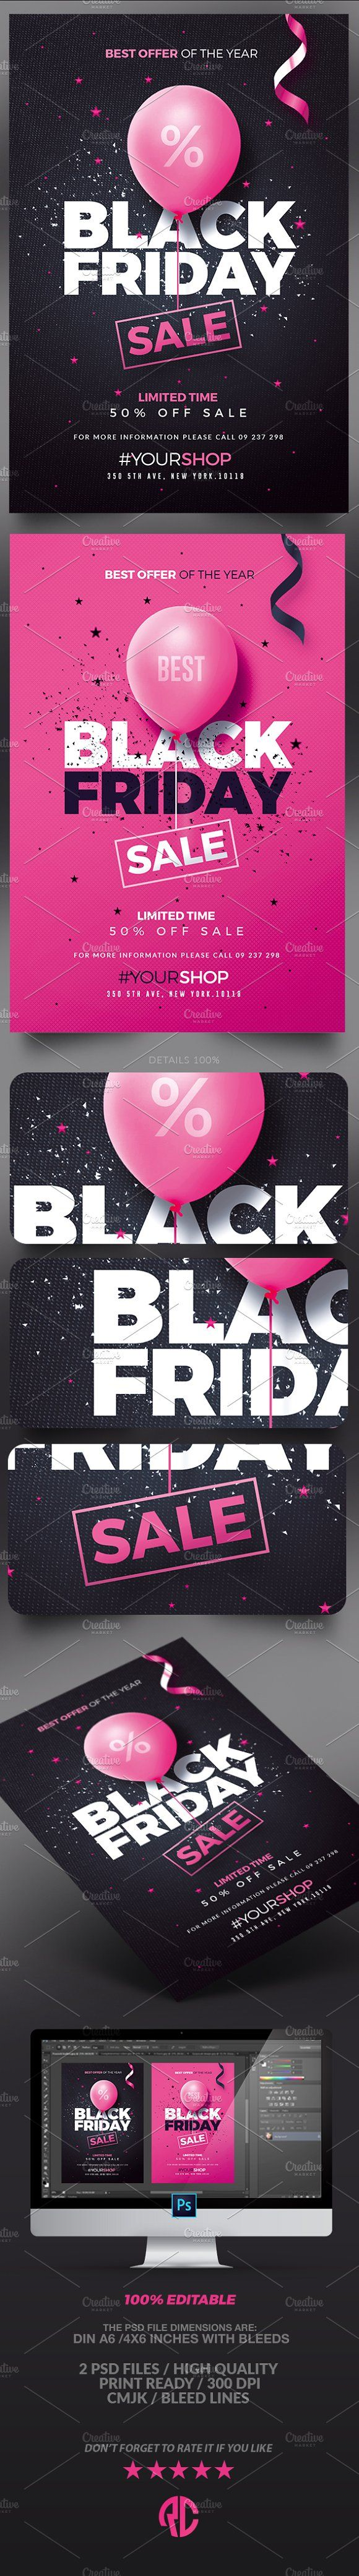 Great design doesn't have to be hard. Check out Black Friday Flyers by @romecreation on @CreativeMarket https://crmrkt.com/4GlA5 #blackfriday